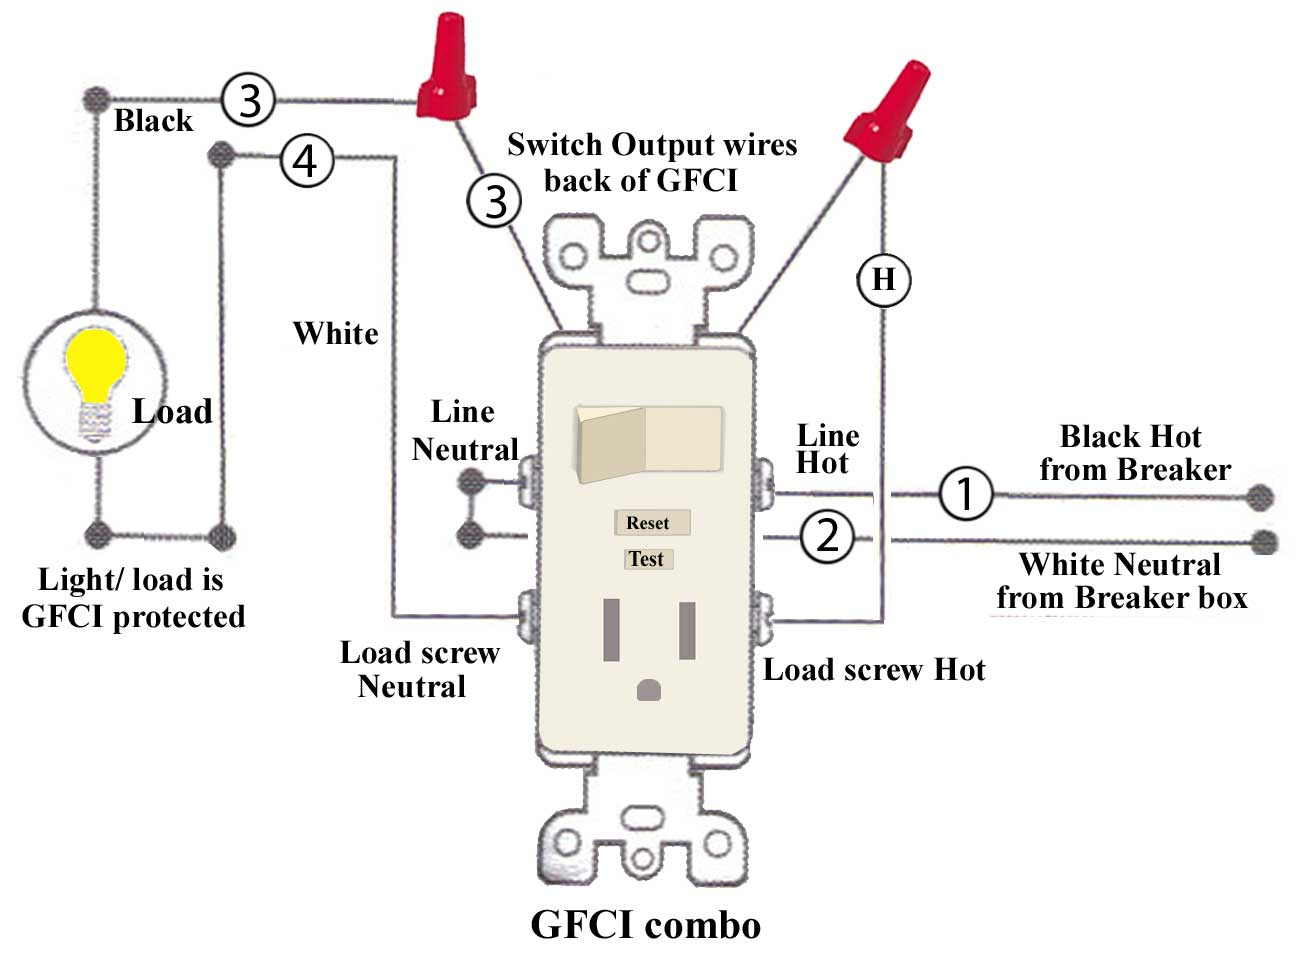 Combination Light Switch Wiring Diagram - Wiring Block Diagram - Light Switch To Outlet Wiring Diagram